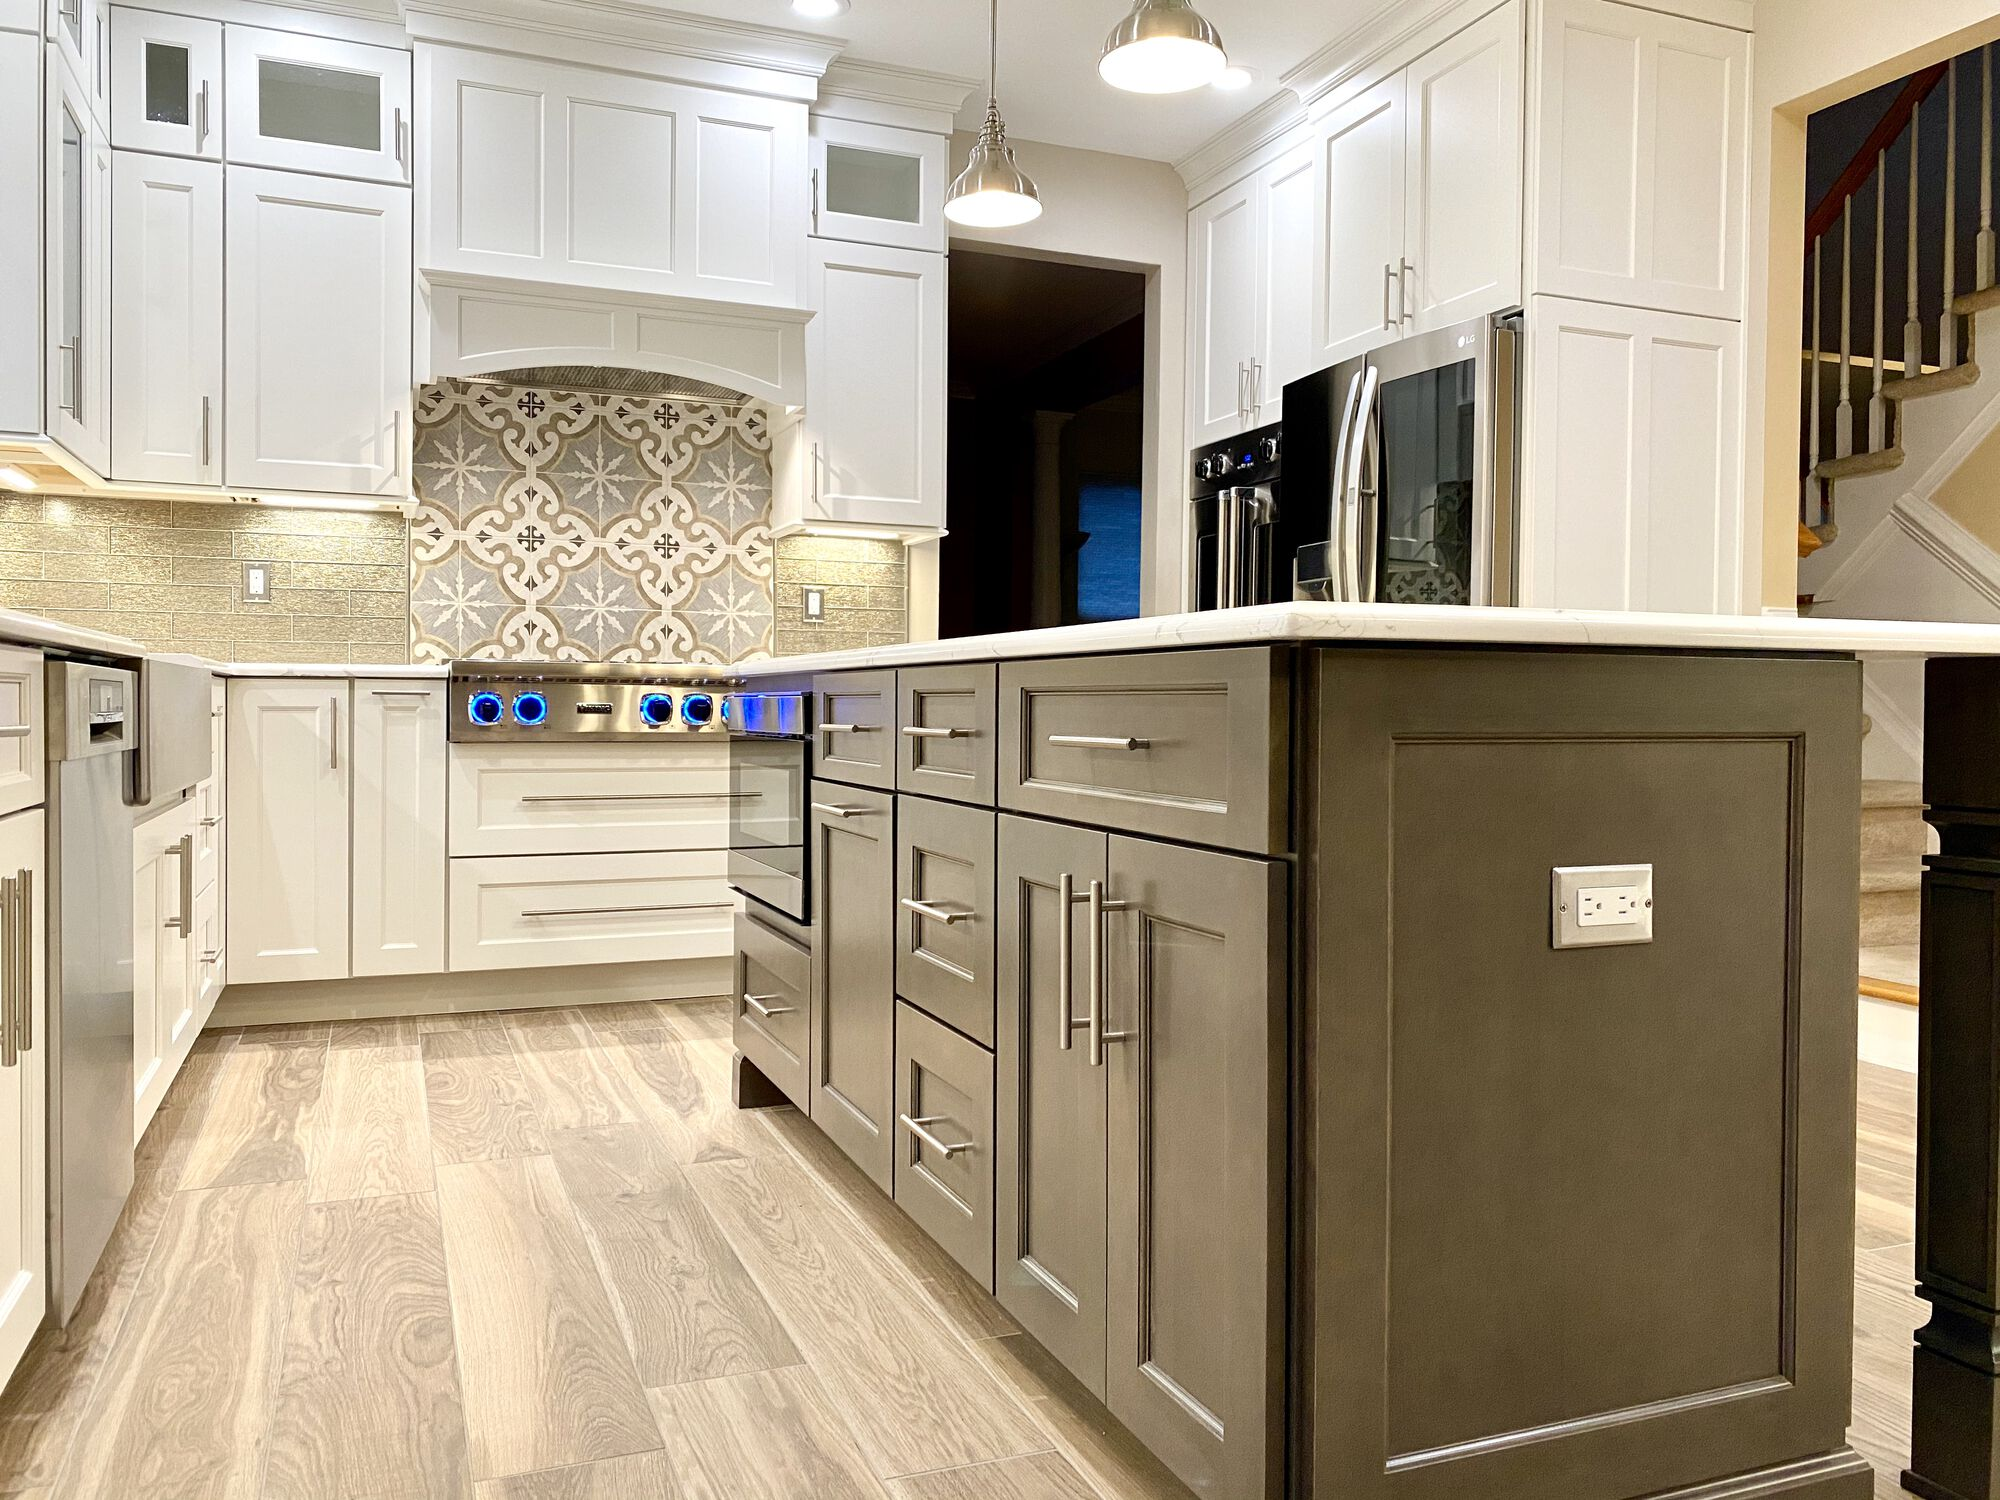 Brighton Kitchen Cabinetry Island Truffle Finish in Somerset County New Jersey